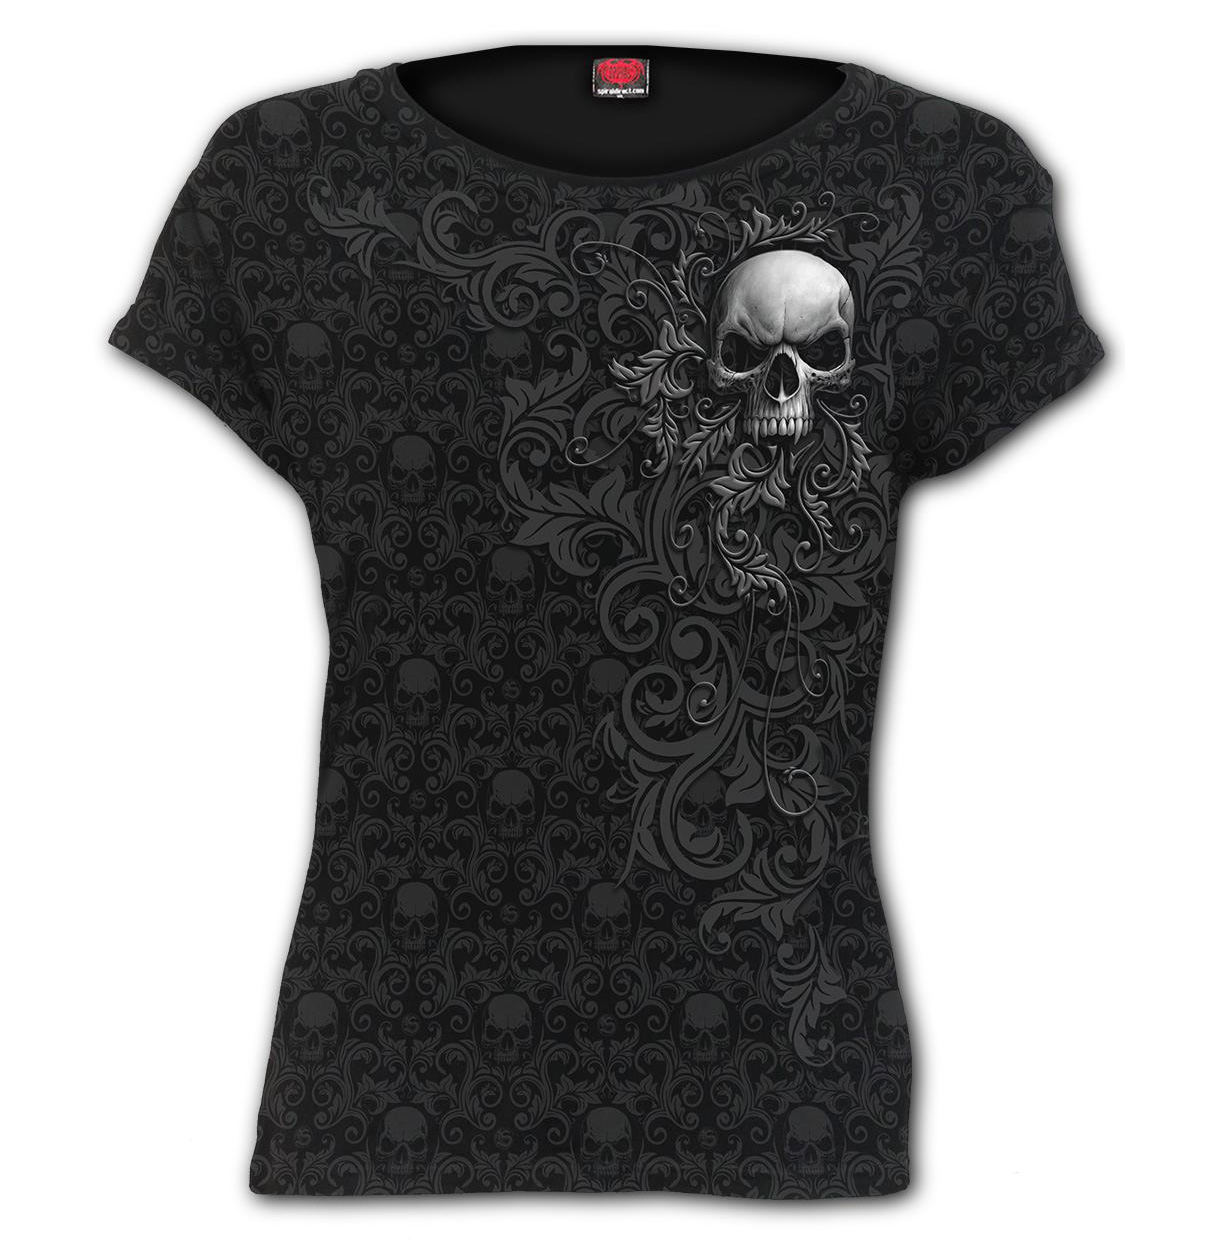 Spiral-Direct-Ladies-Black-Gothic-SKULL-SCROLL-Impression-T-Shirt-Top-All-Sizes thumbnail 11